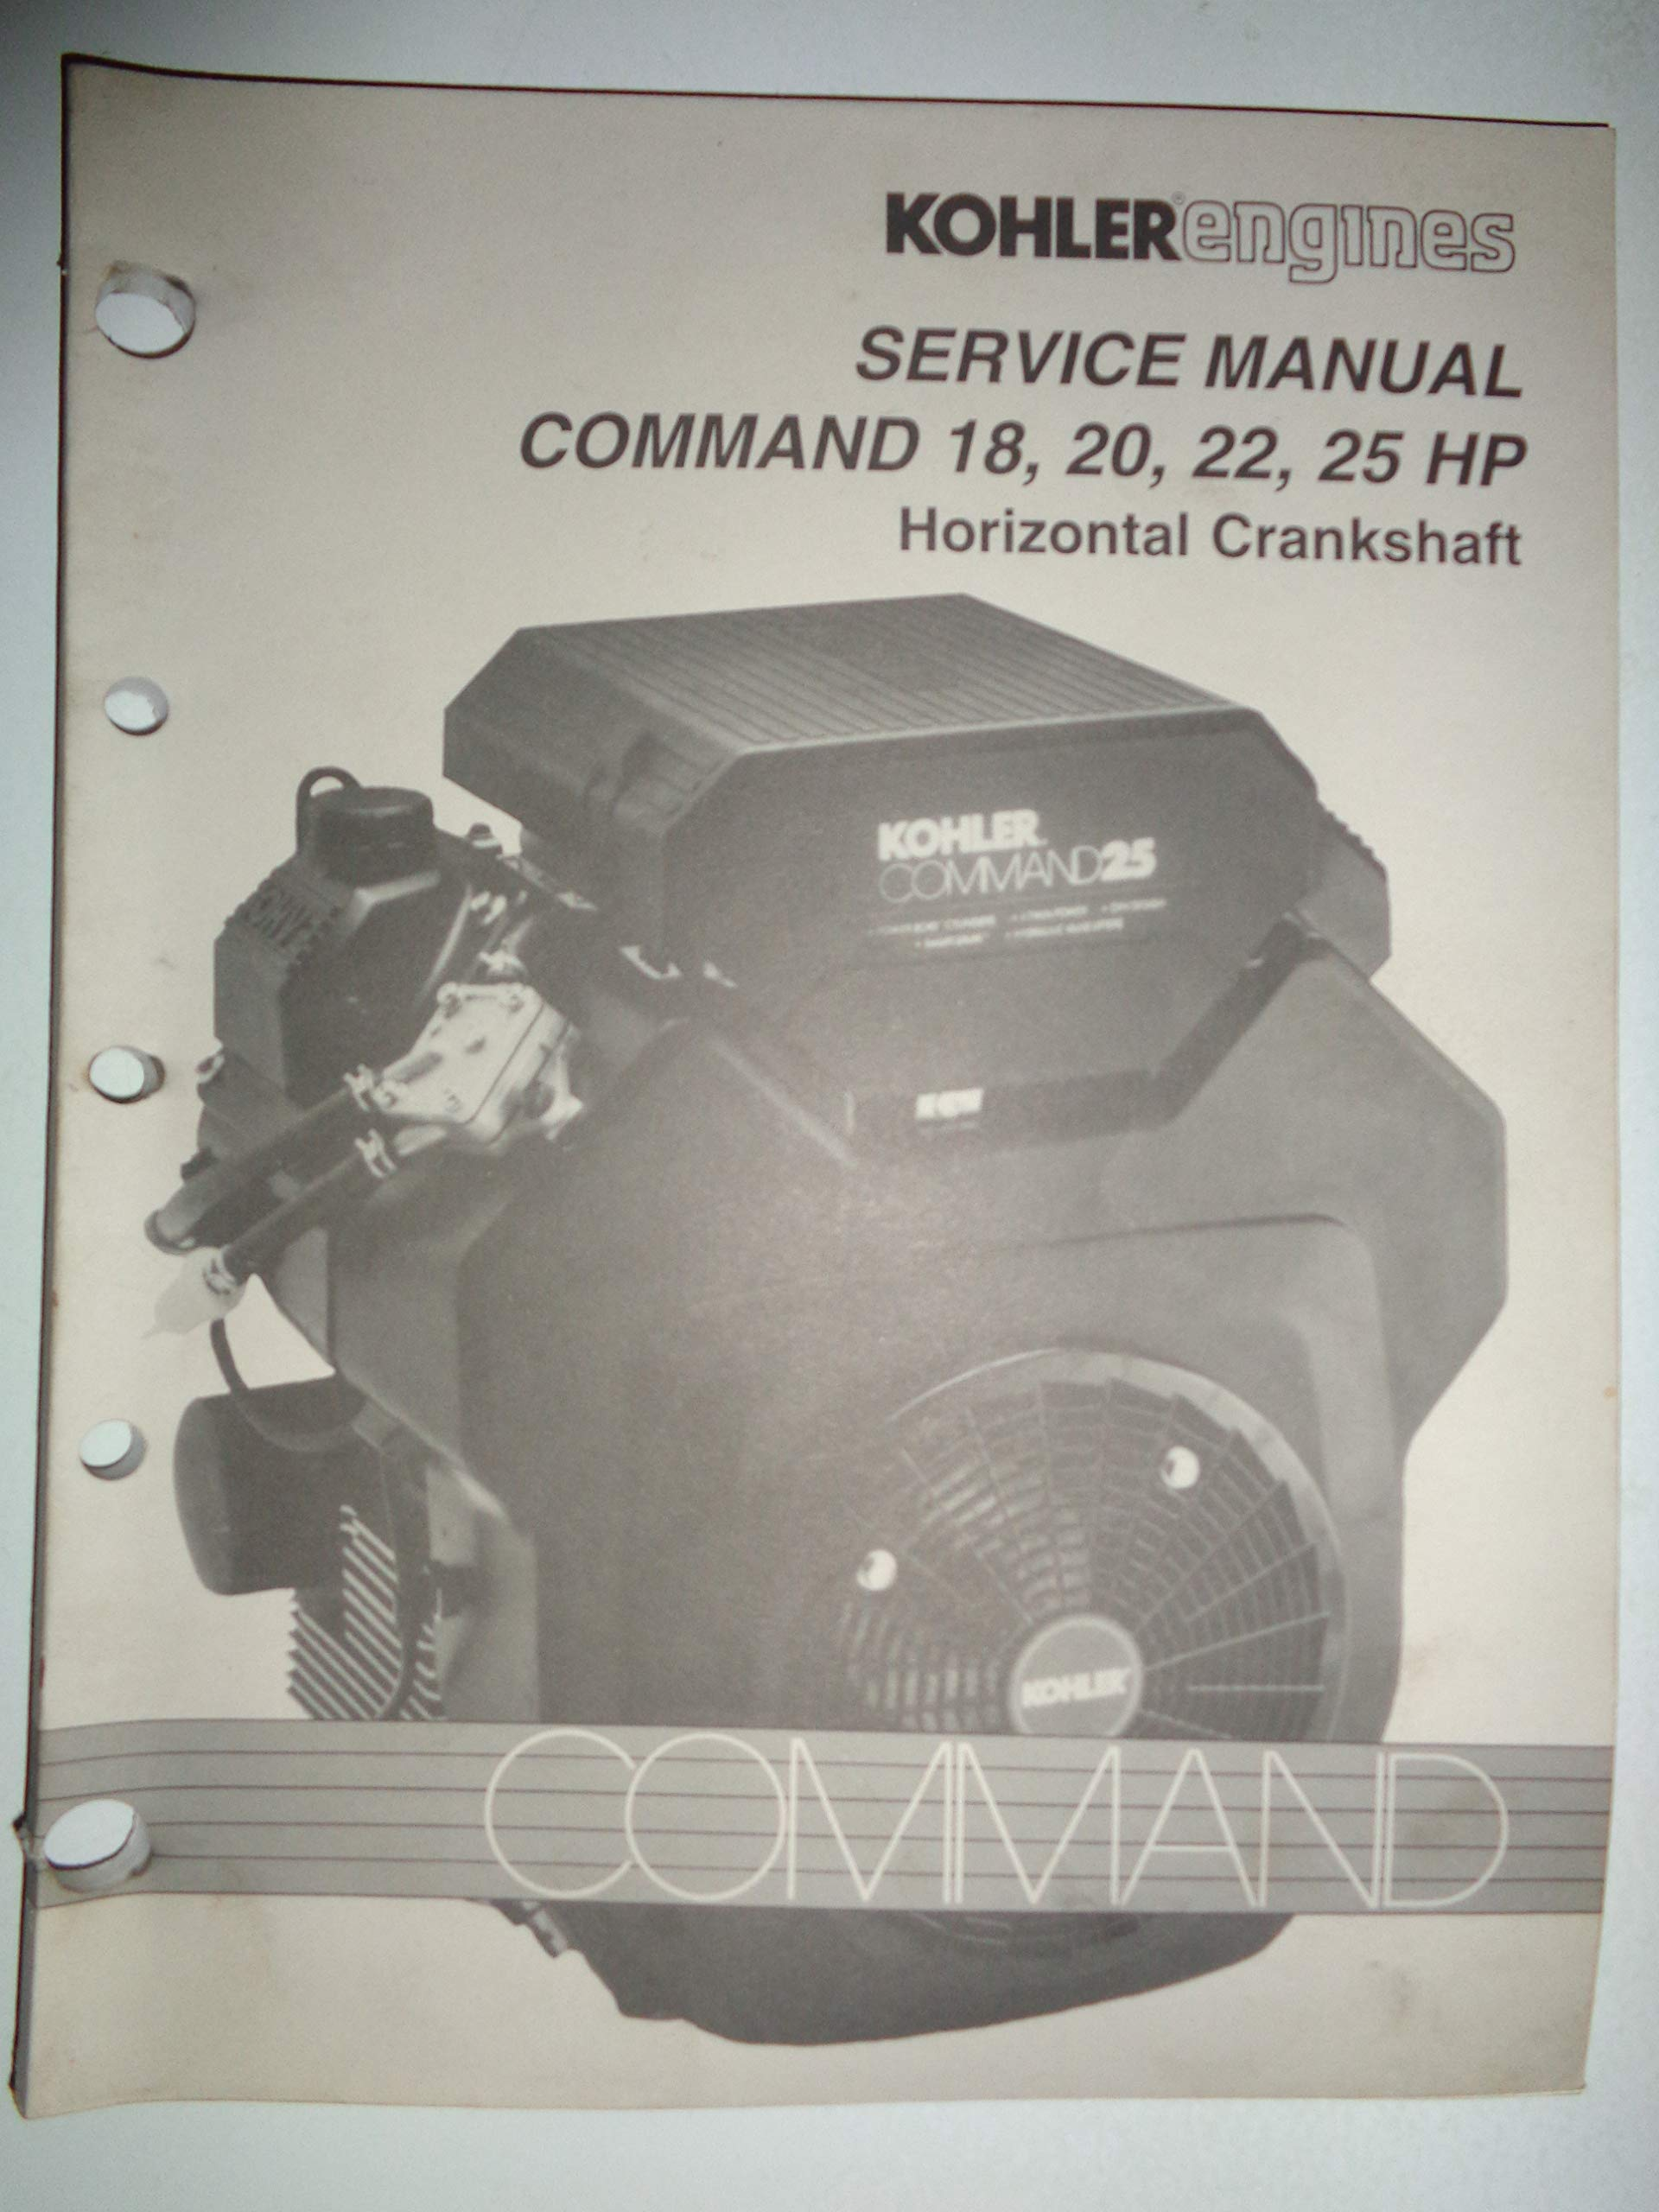 Kohler Command 18, 20, 22, 25 HP Horizontal Crankshaft